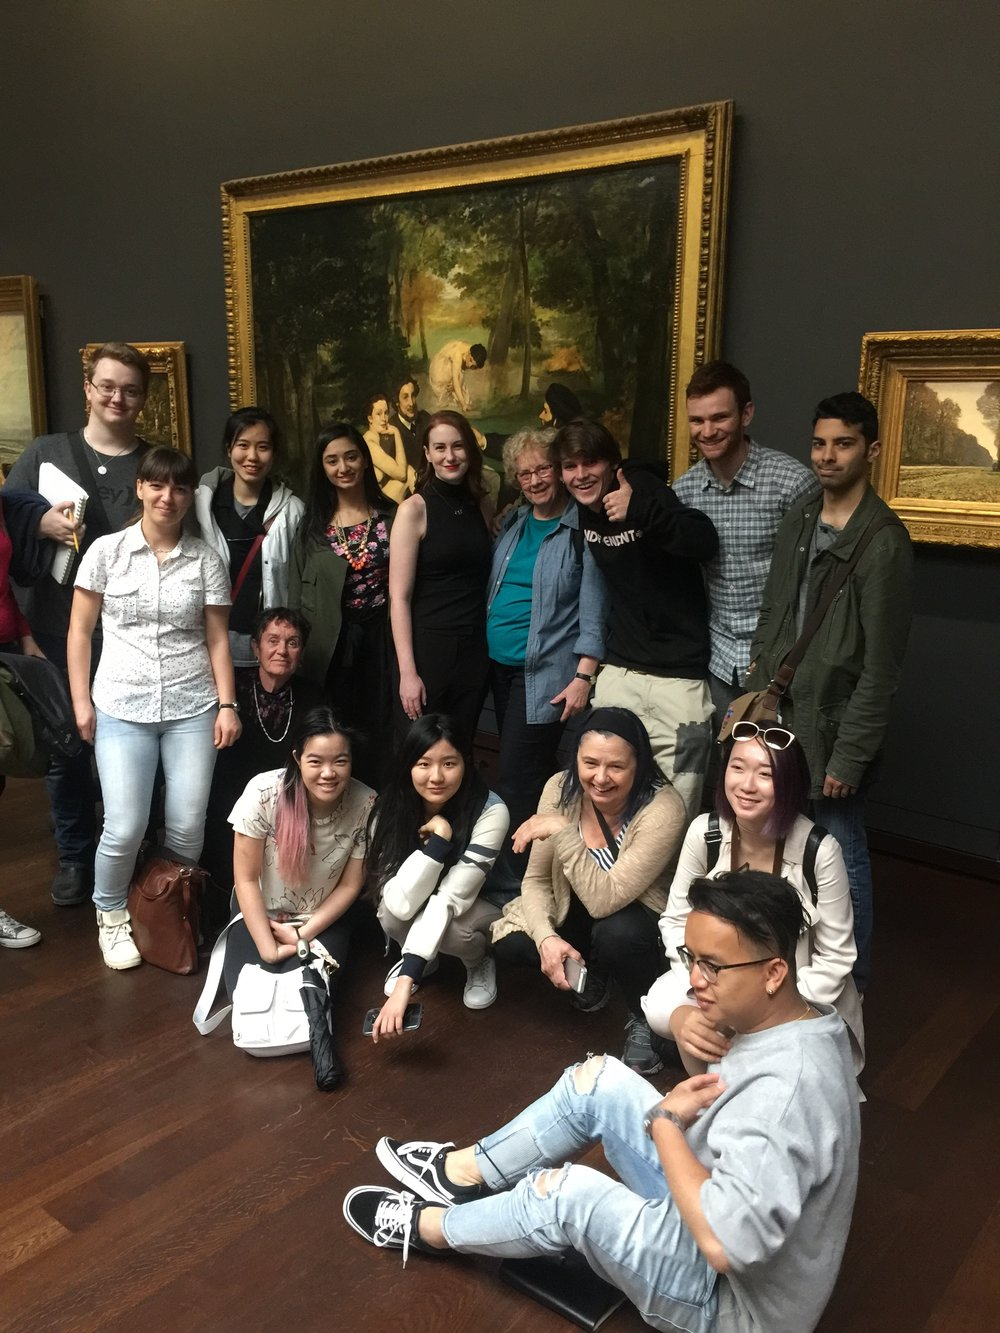 Group photograph at the Orsay in front of one of the most important works of modern art-- Edouard Manet's  Le Déjeuner sur l'herbe  (1863). Kate second from far left.